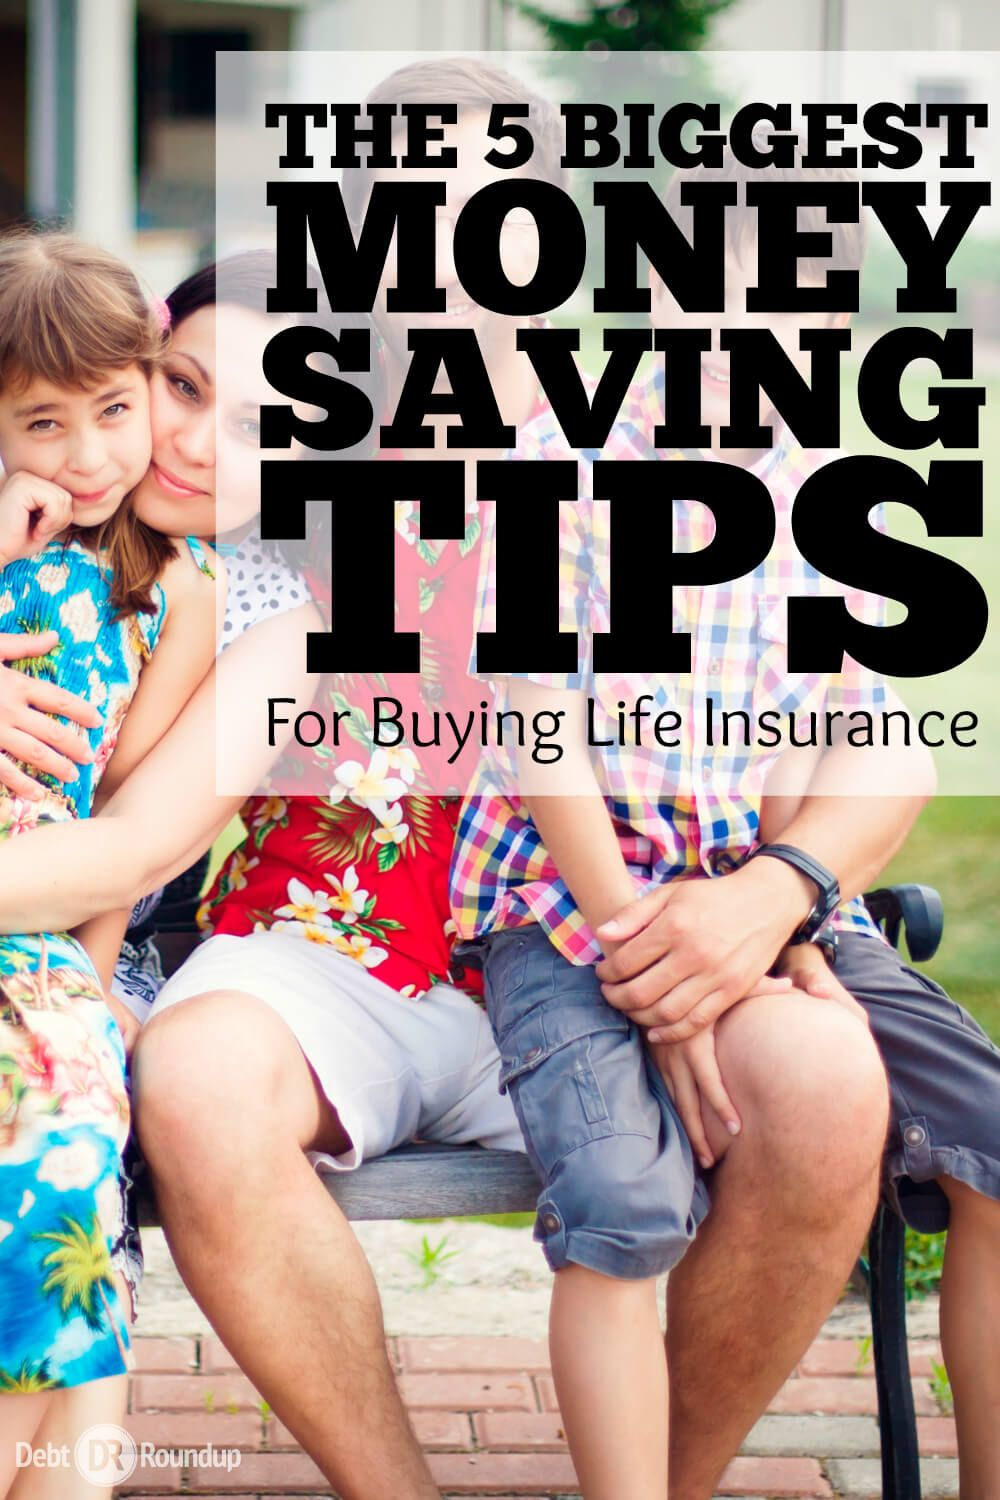 5 of the Biggest Money Saving Tips for Life Insurance